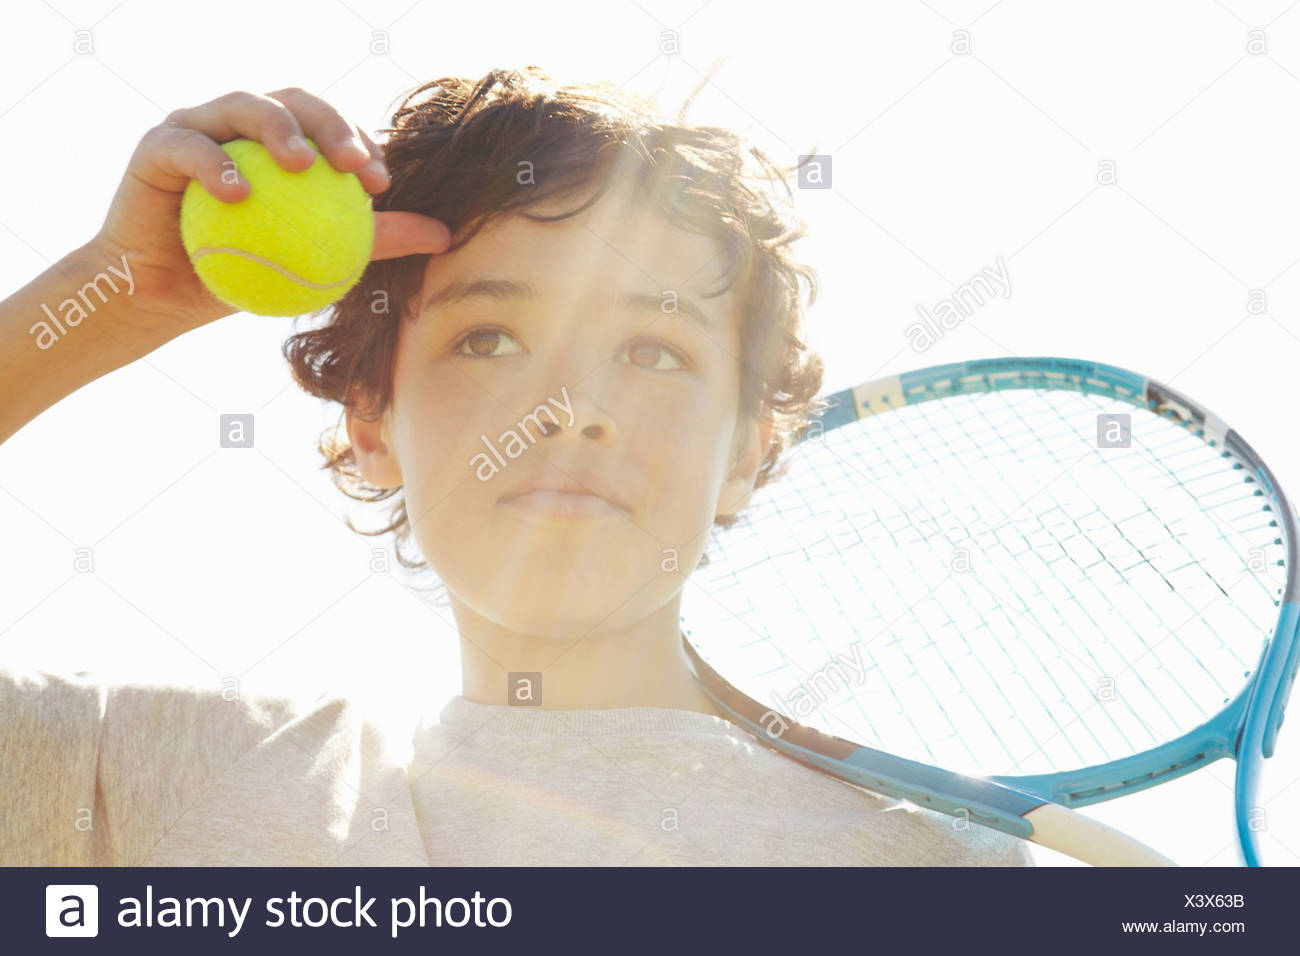 Close up of boy with tennis racket and ball - Stock Image